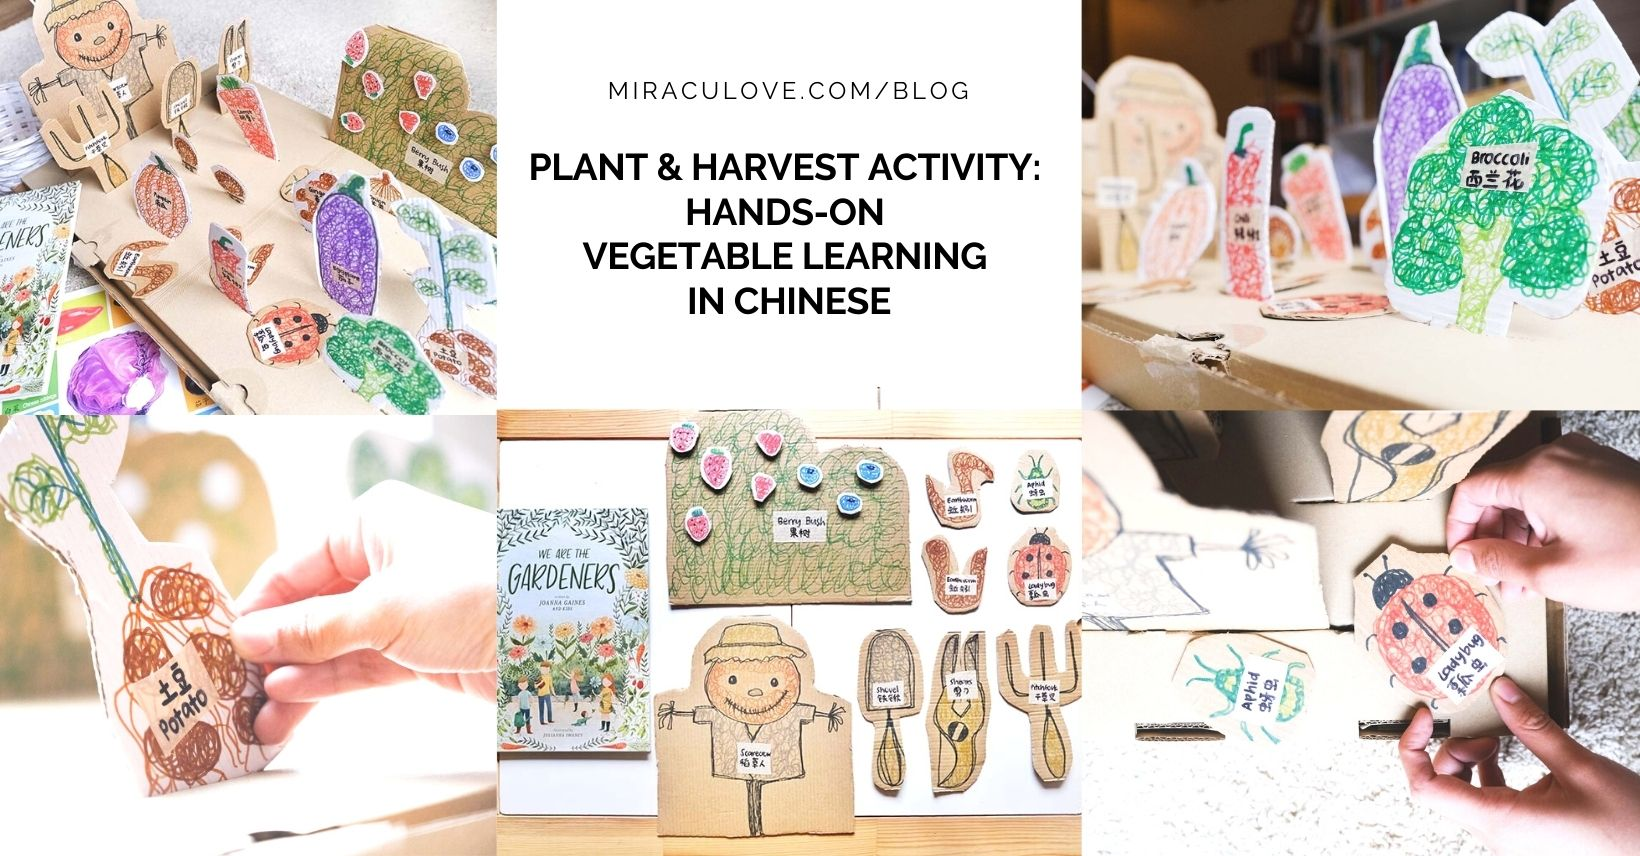 Plant & Harvest Activity: Hands-on Vegetable Learning in Chinese